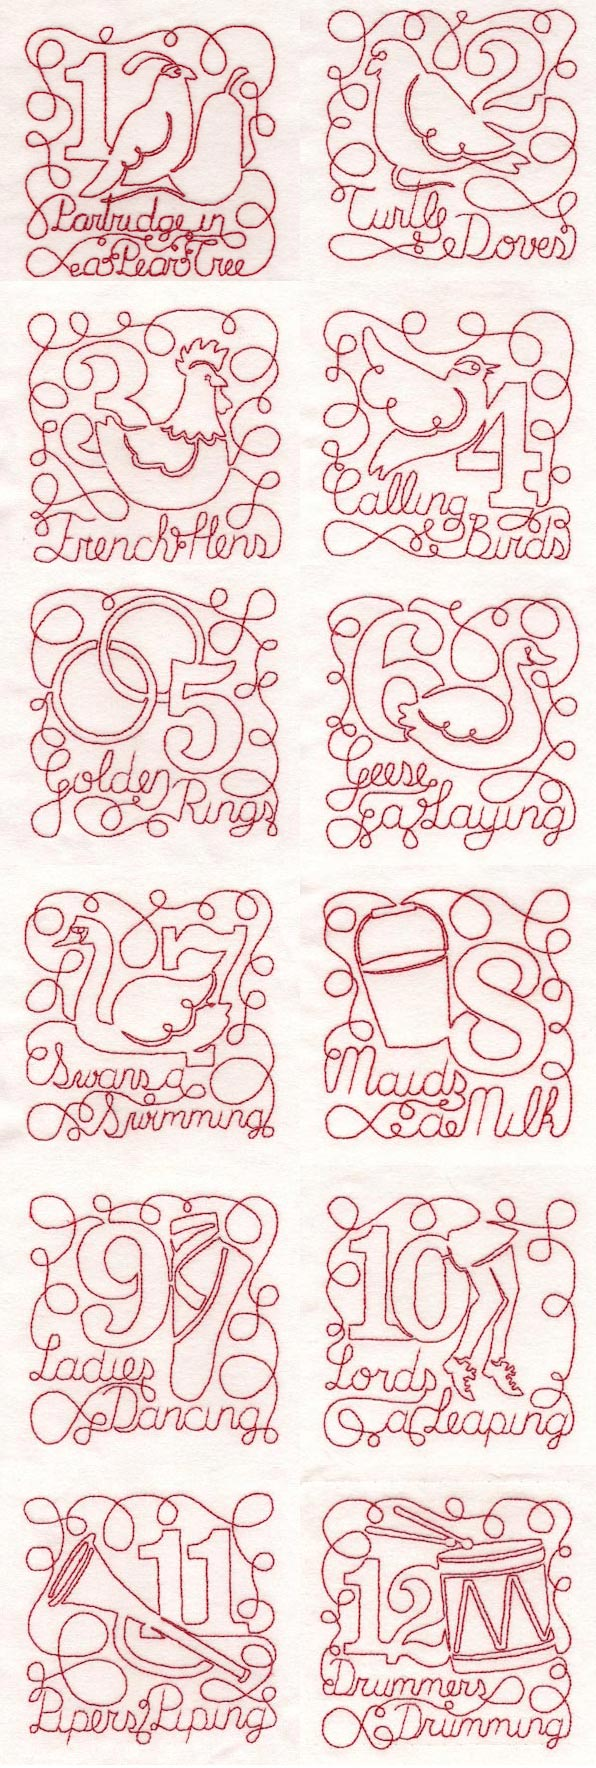 12 Days of Christmas Free Motion Embroidery Machine Design Details